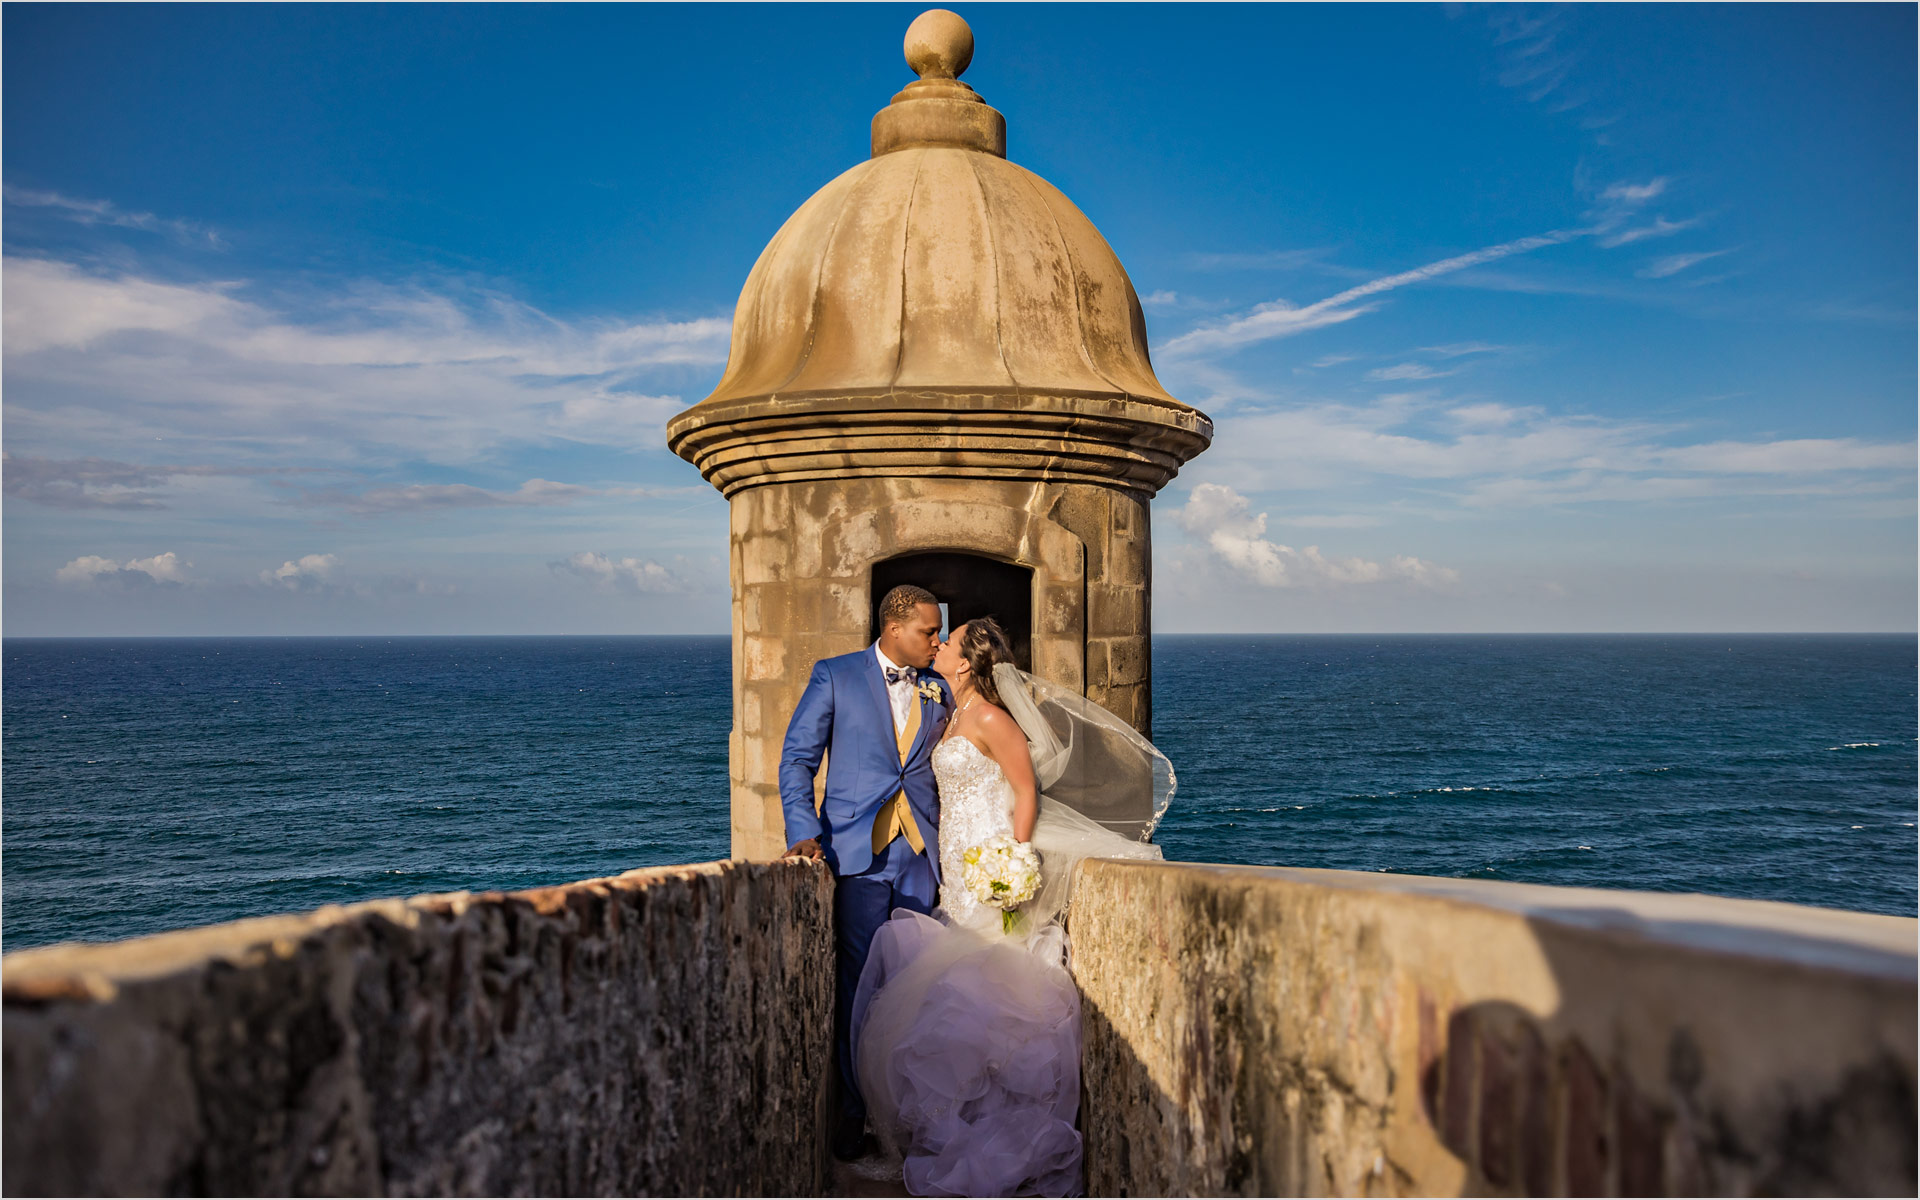 Puerto Rico Wedding.Jessica Ryan Puerto Rico Destination Wedding